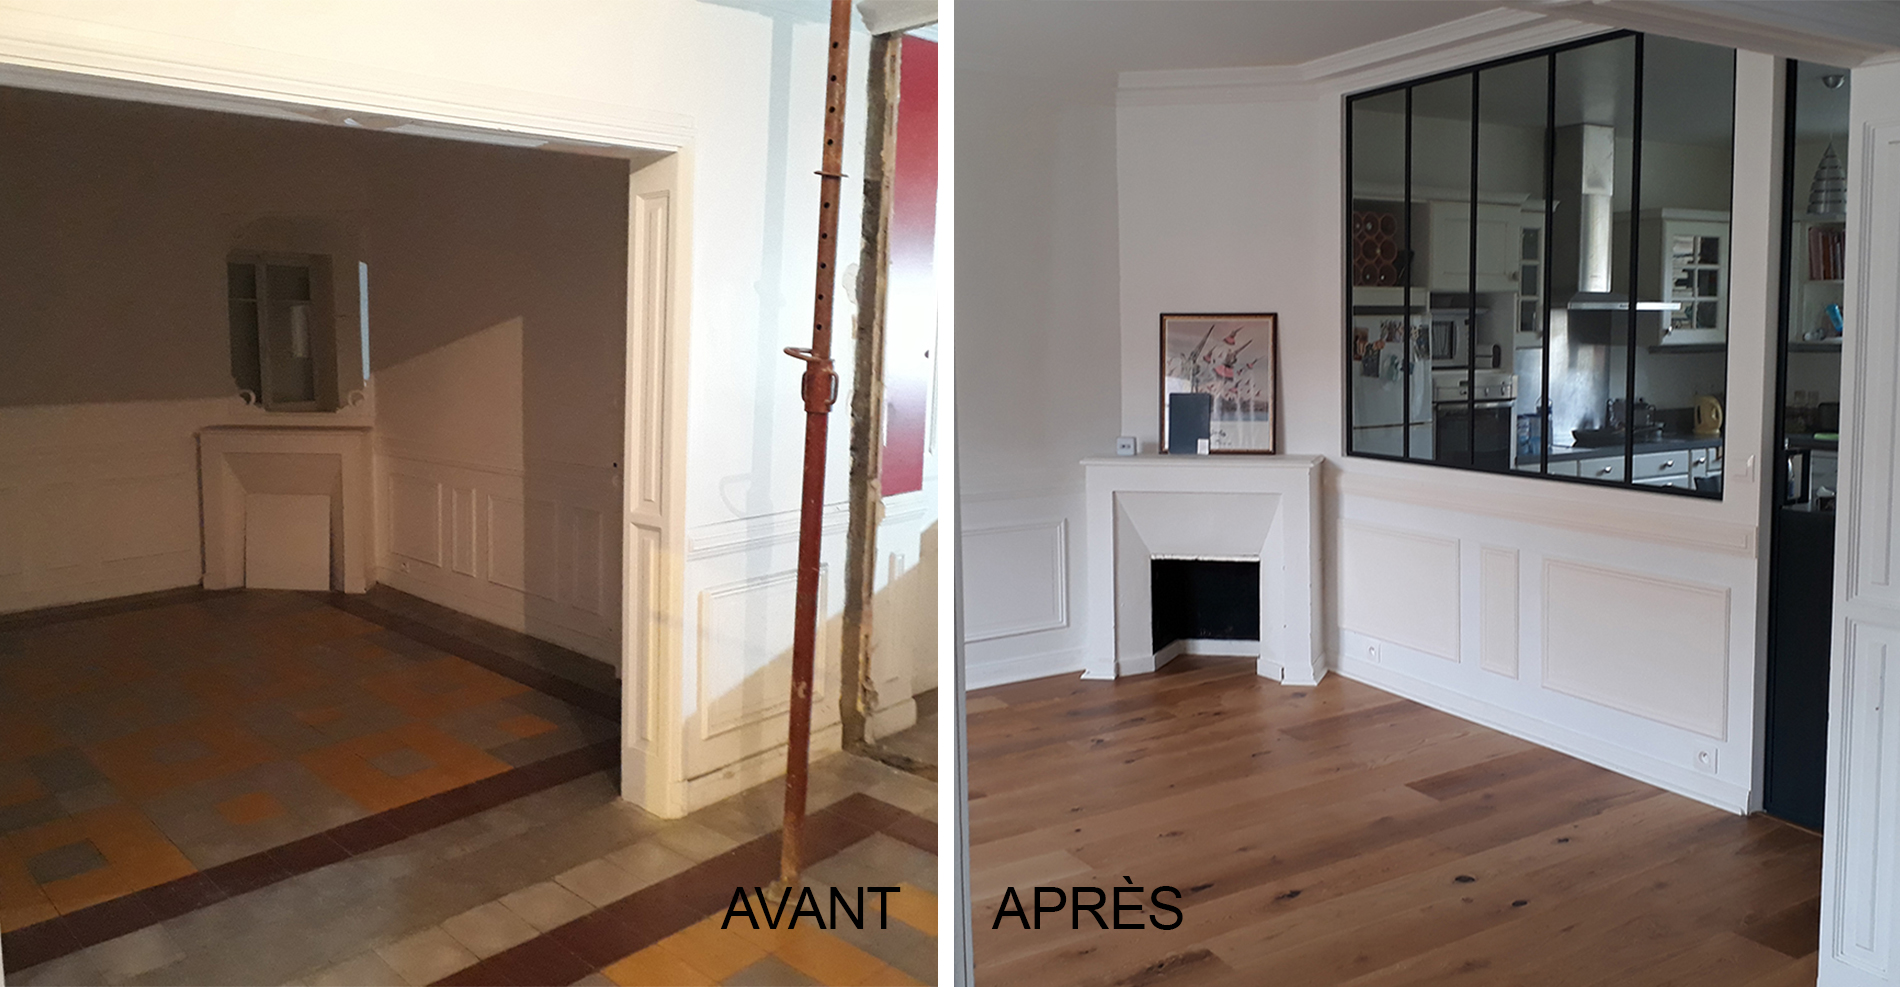 Pose D Une Verriere D Interieur Pose Verriere Good Verriere D Interieur En Bois Verriere